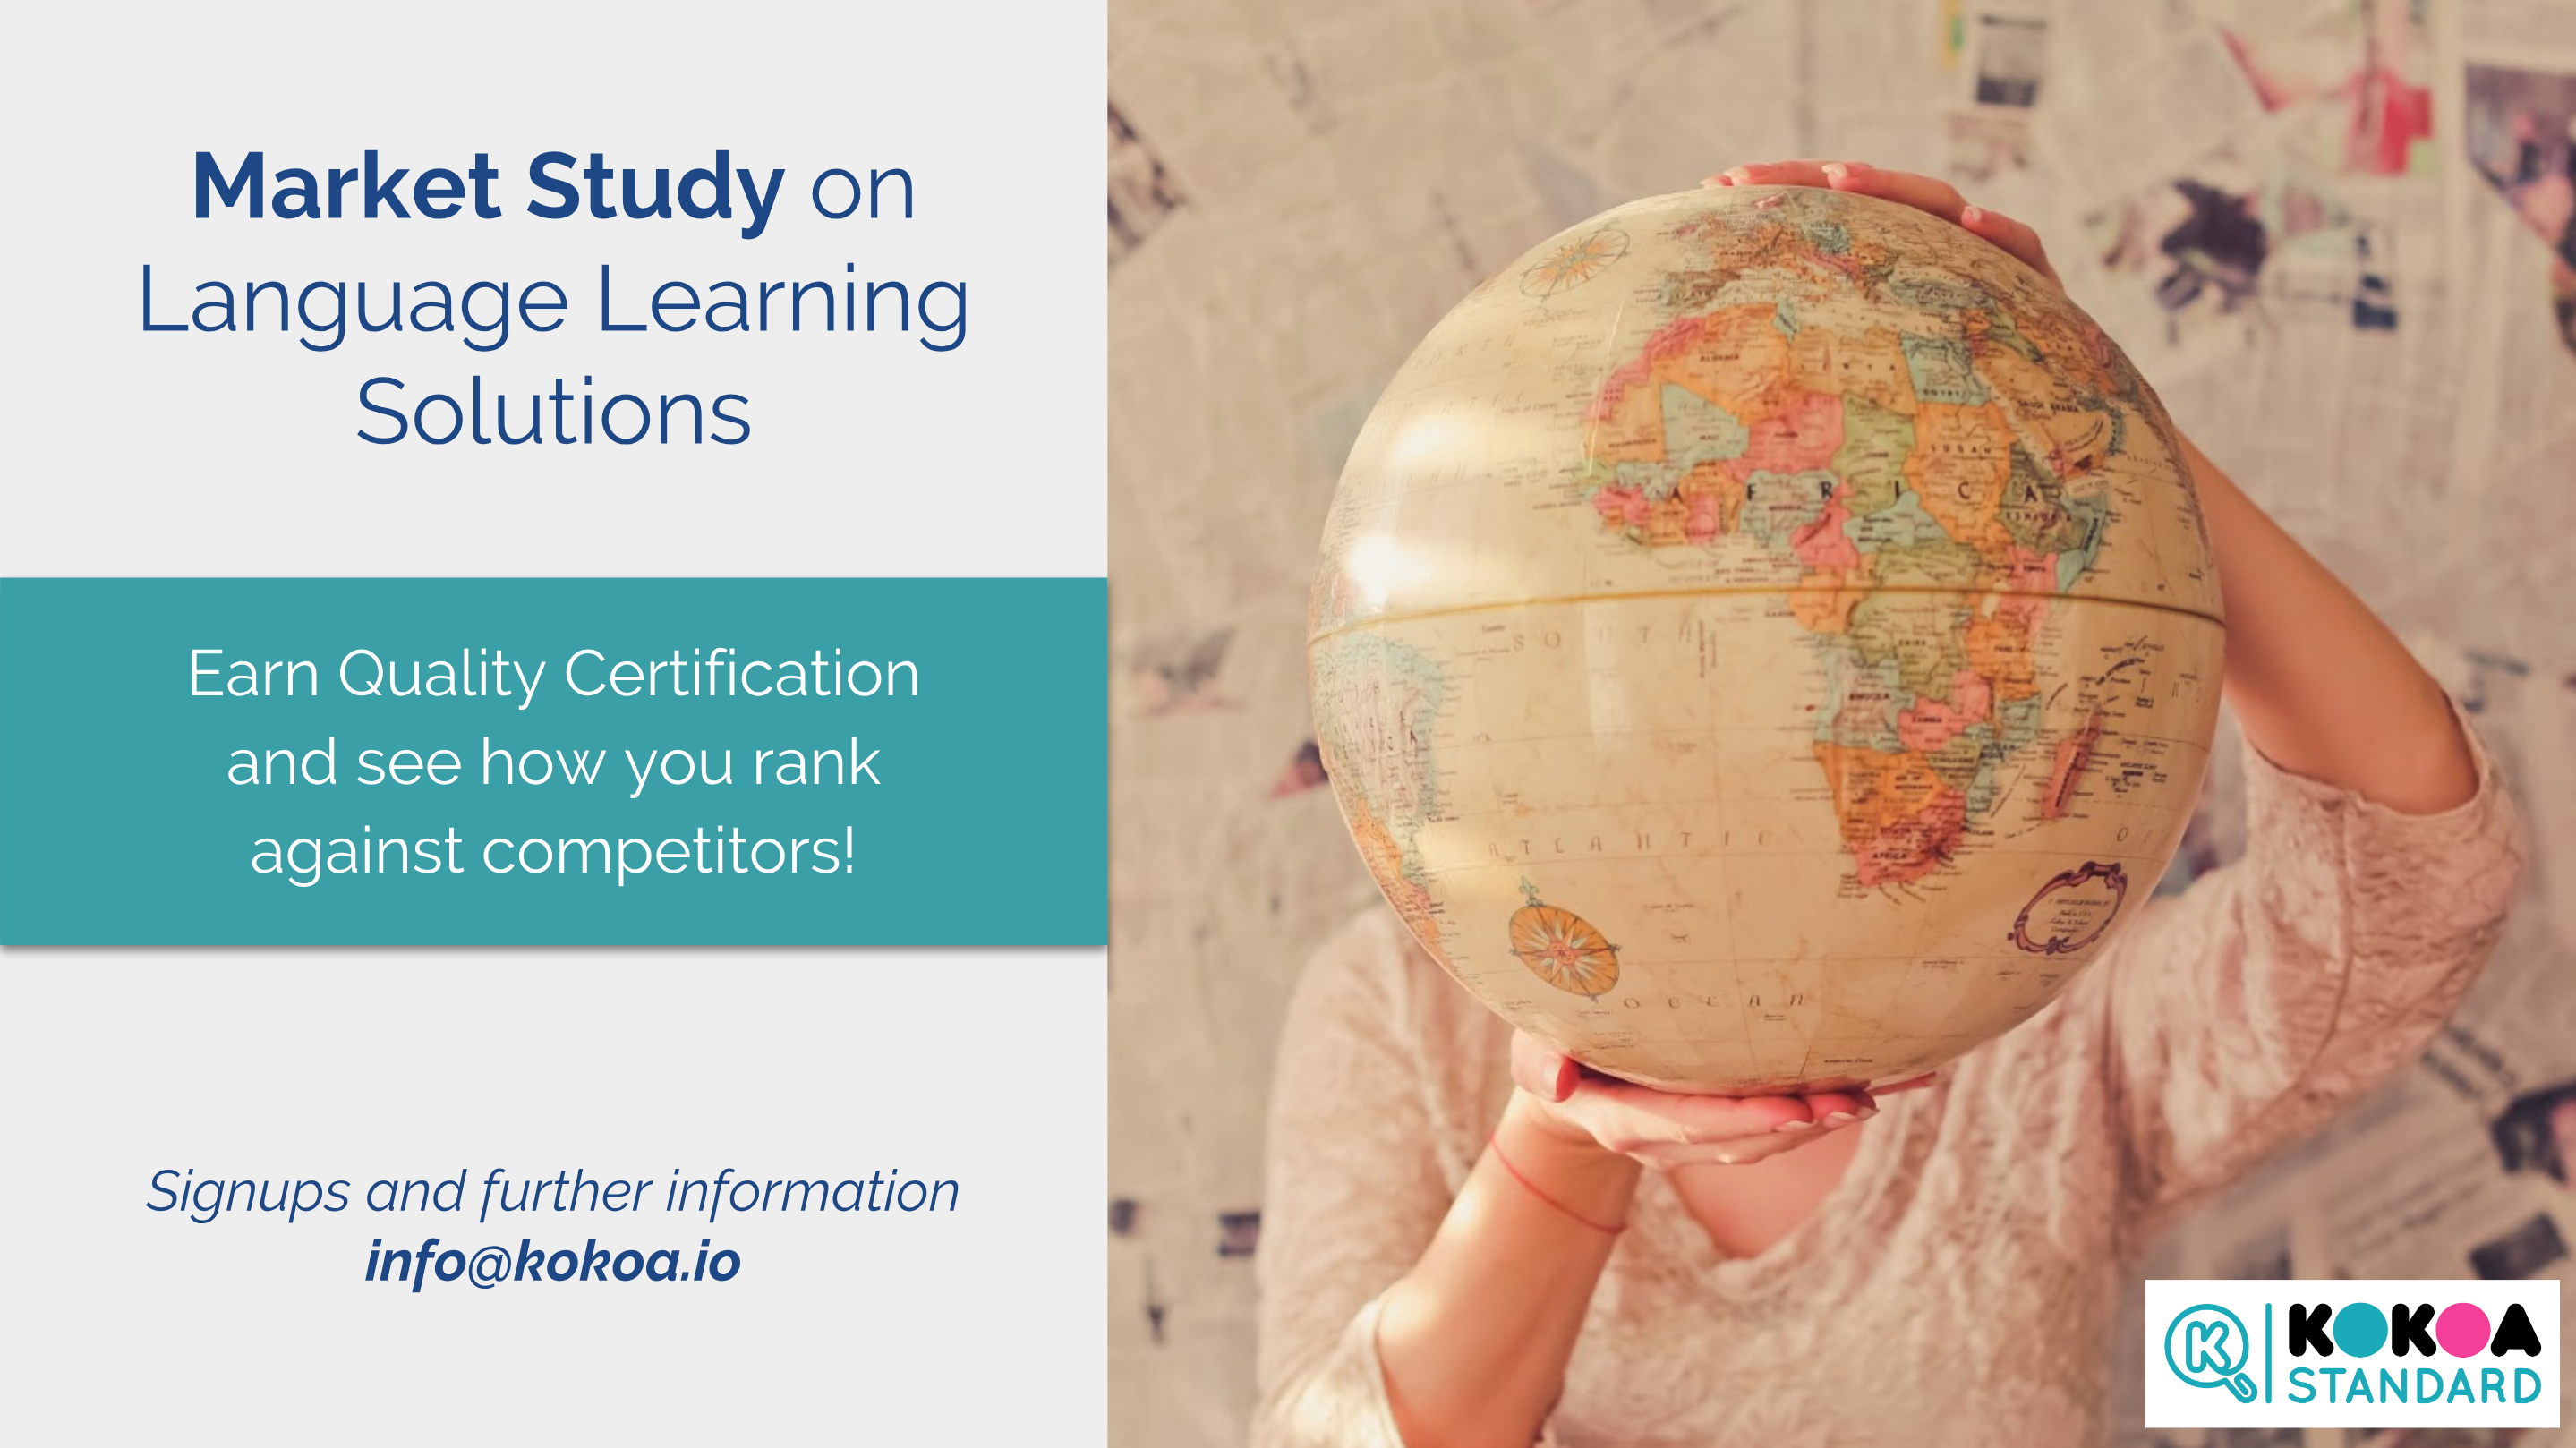 Market Study on Language Learning Solutions